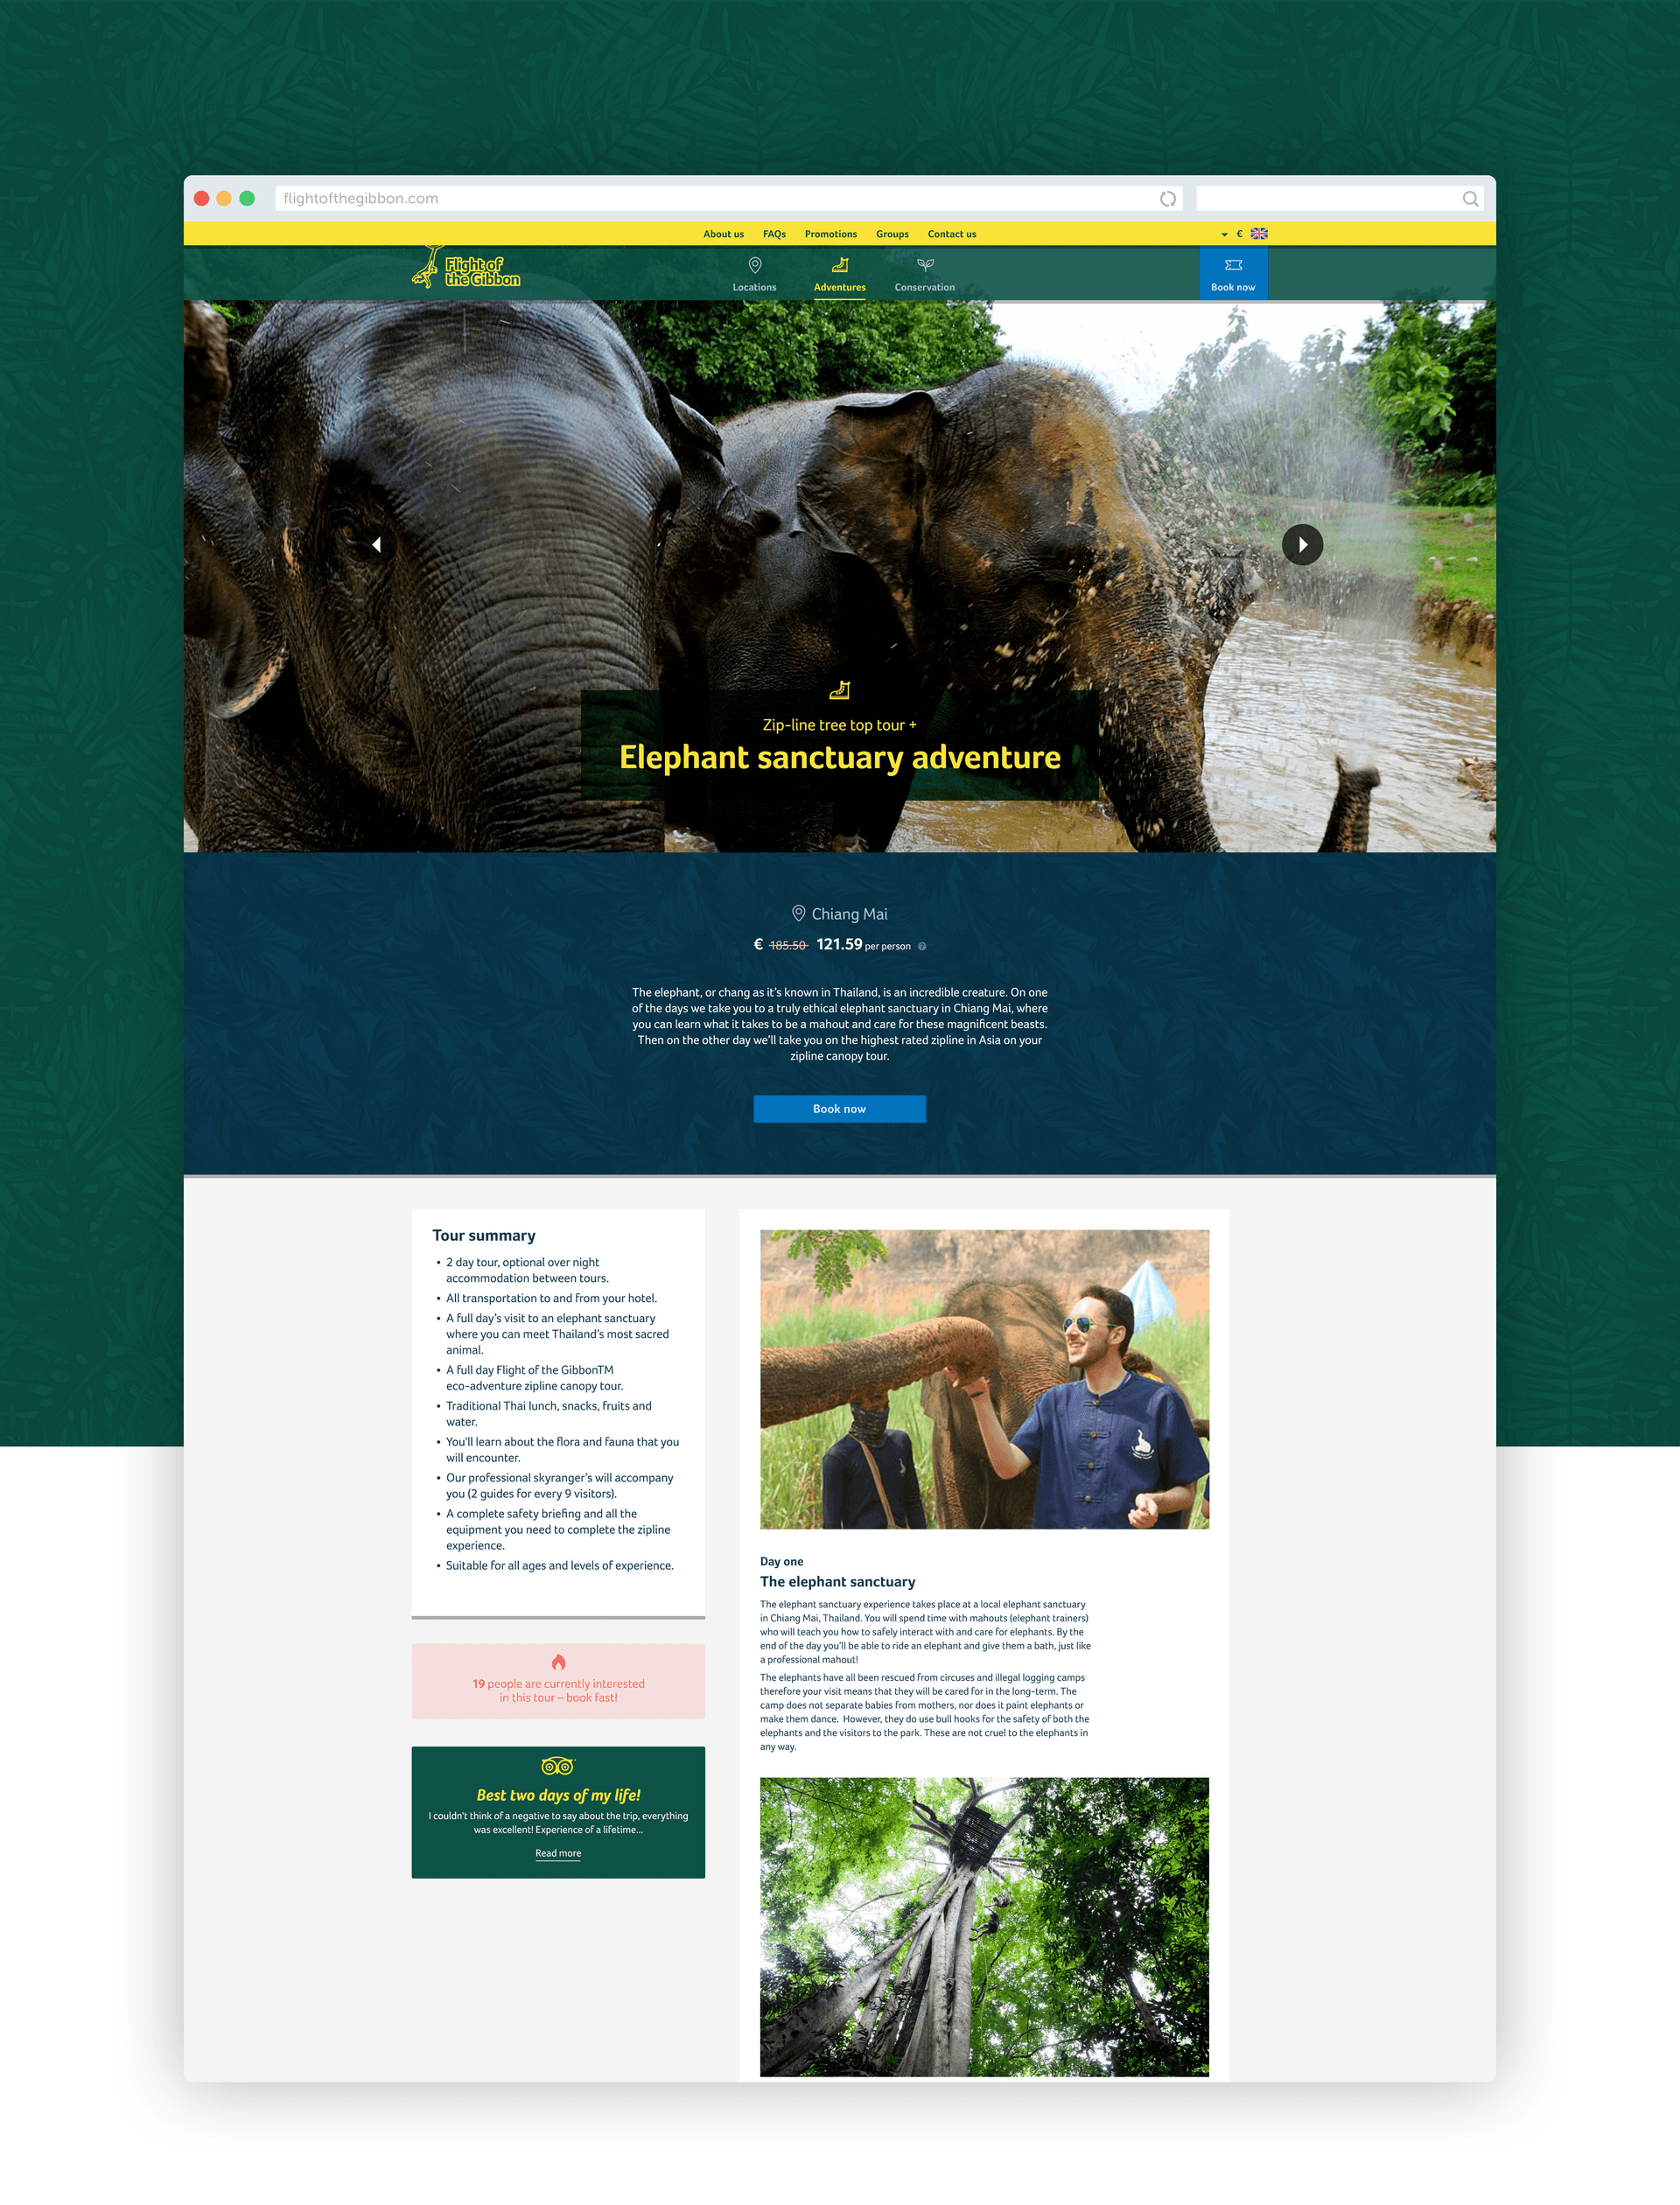 Flight of the Gibbon website design